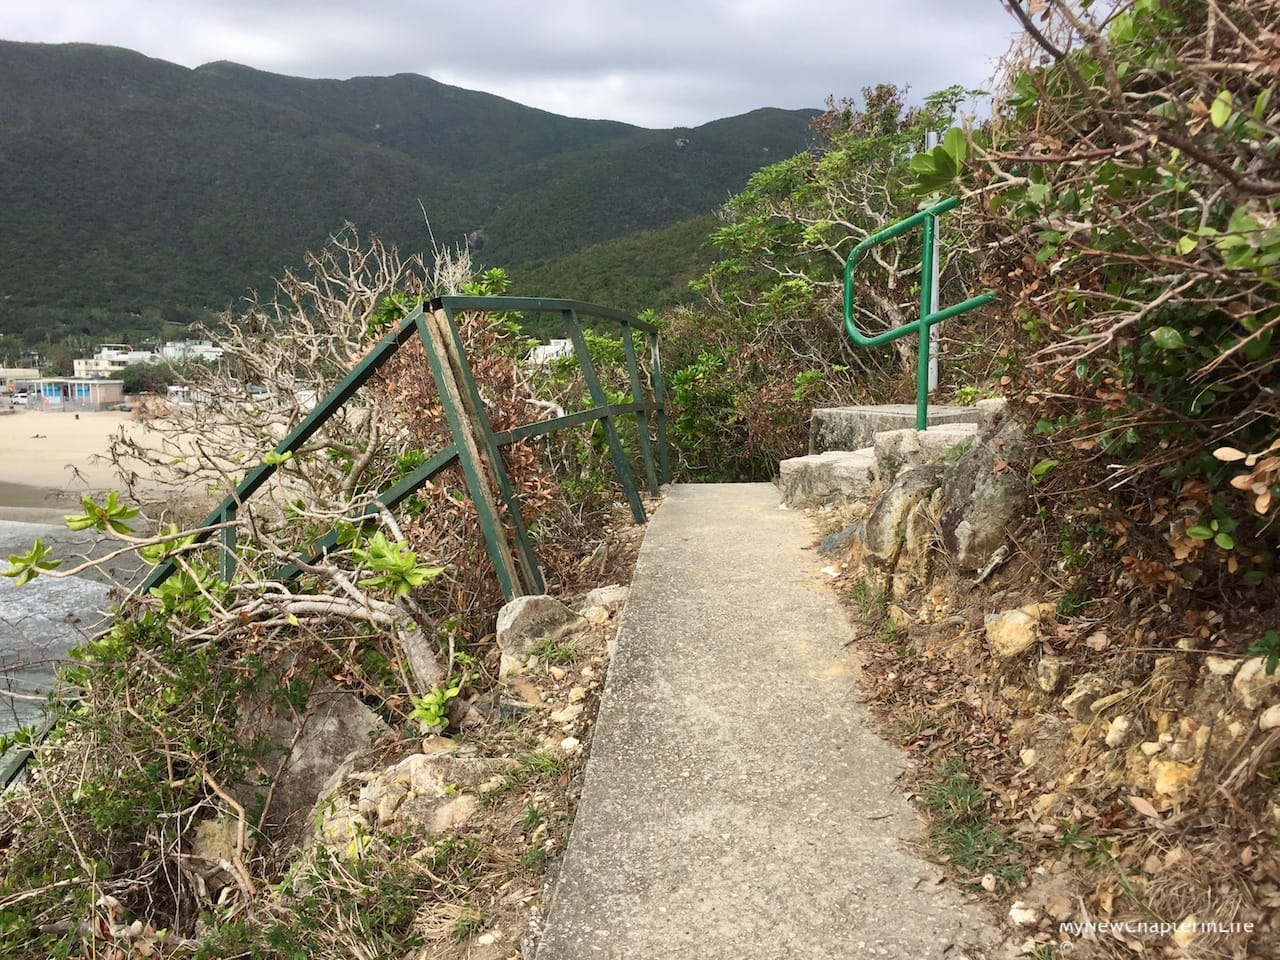 The hand rail along the paved steps to the rock carving were damaged